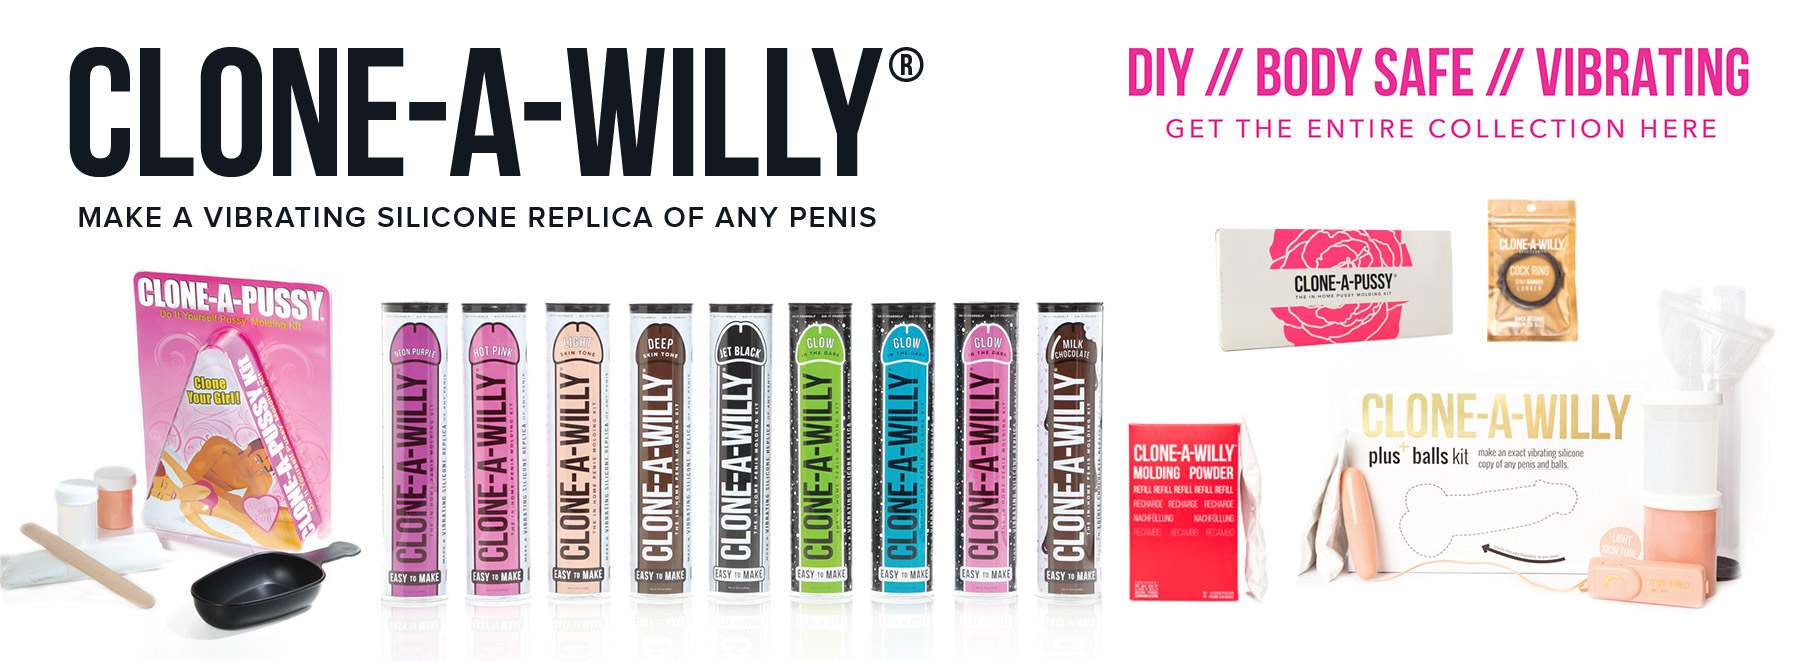 Bed Time Toys, Clone-a-Willy, Best Prices Online